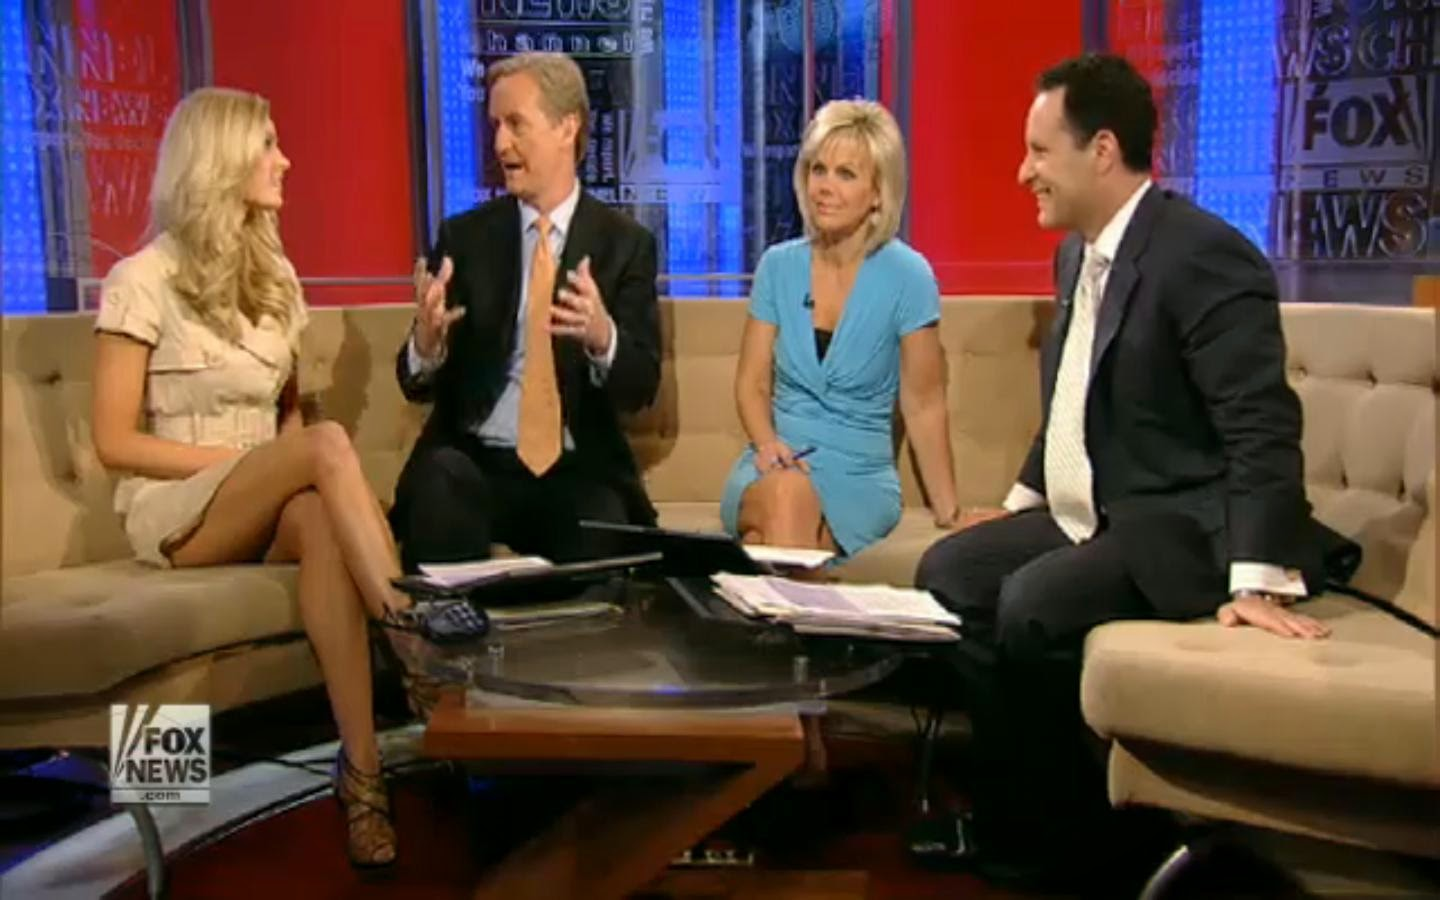 The scat from fox news commentary on fox news anchors the plastic